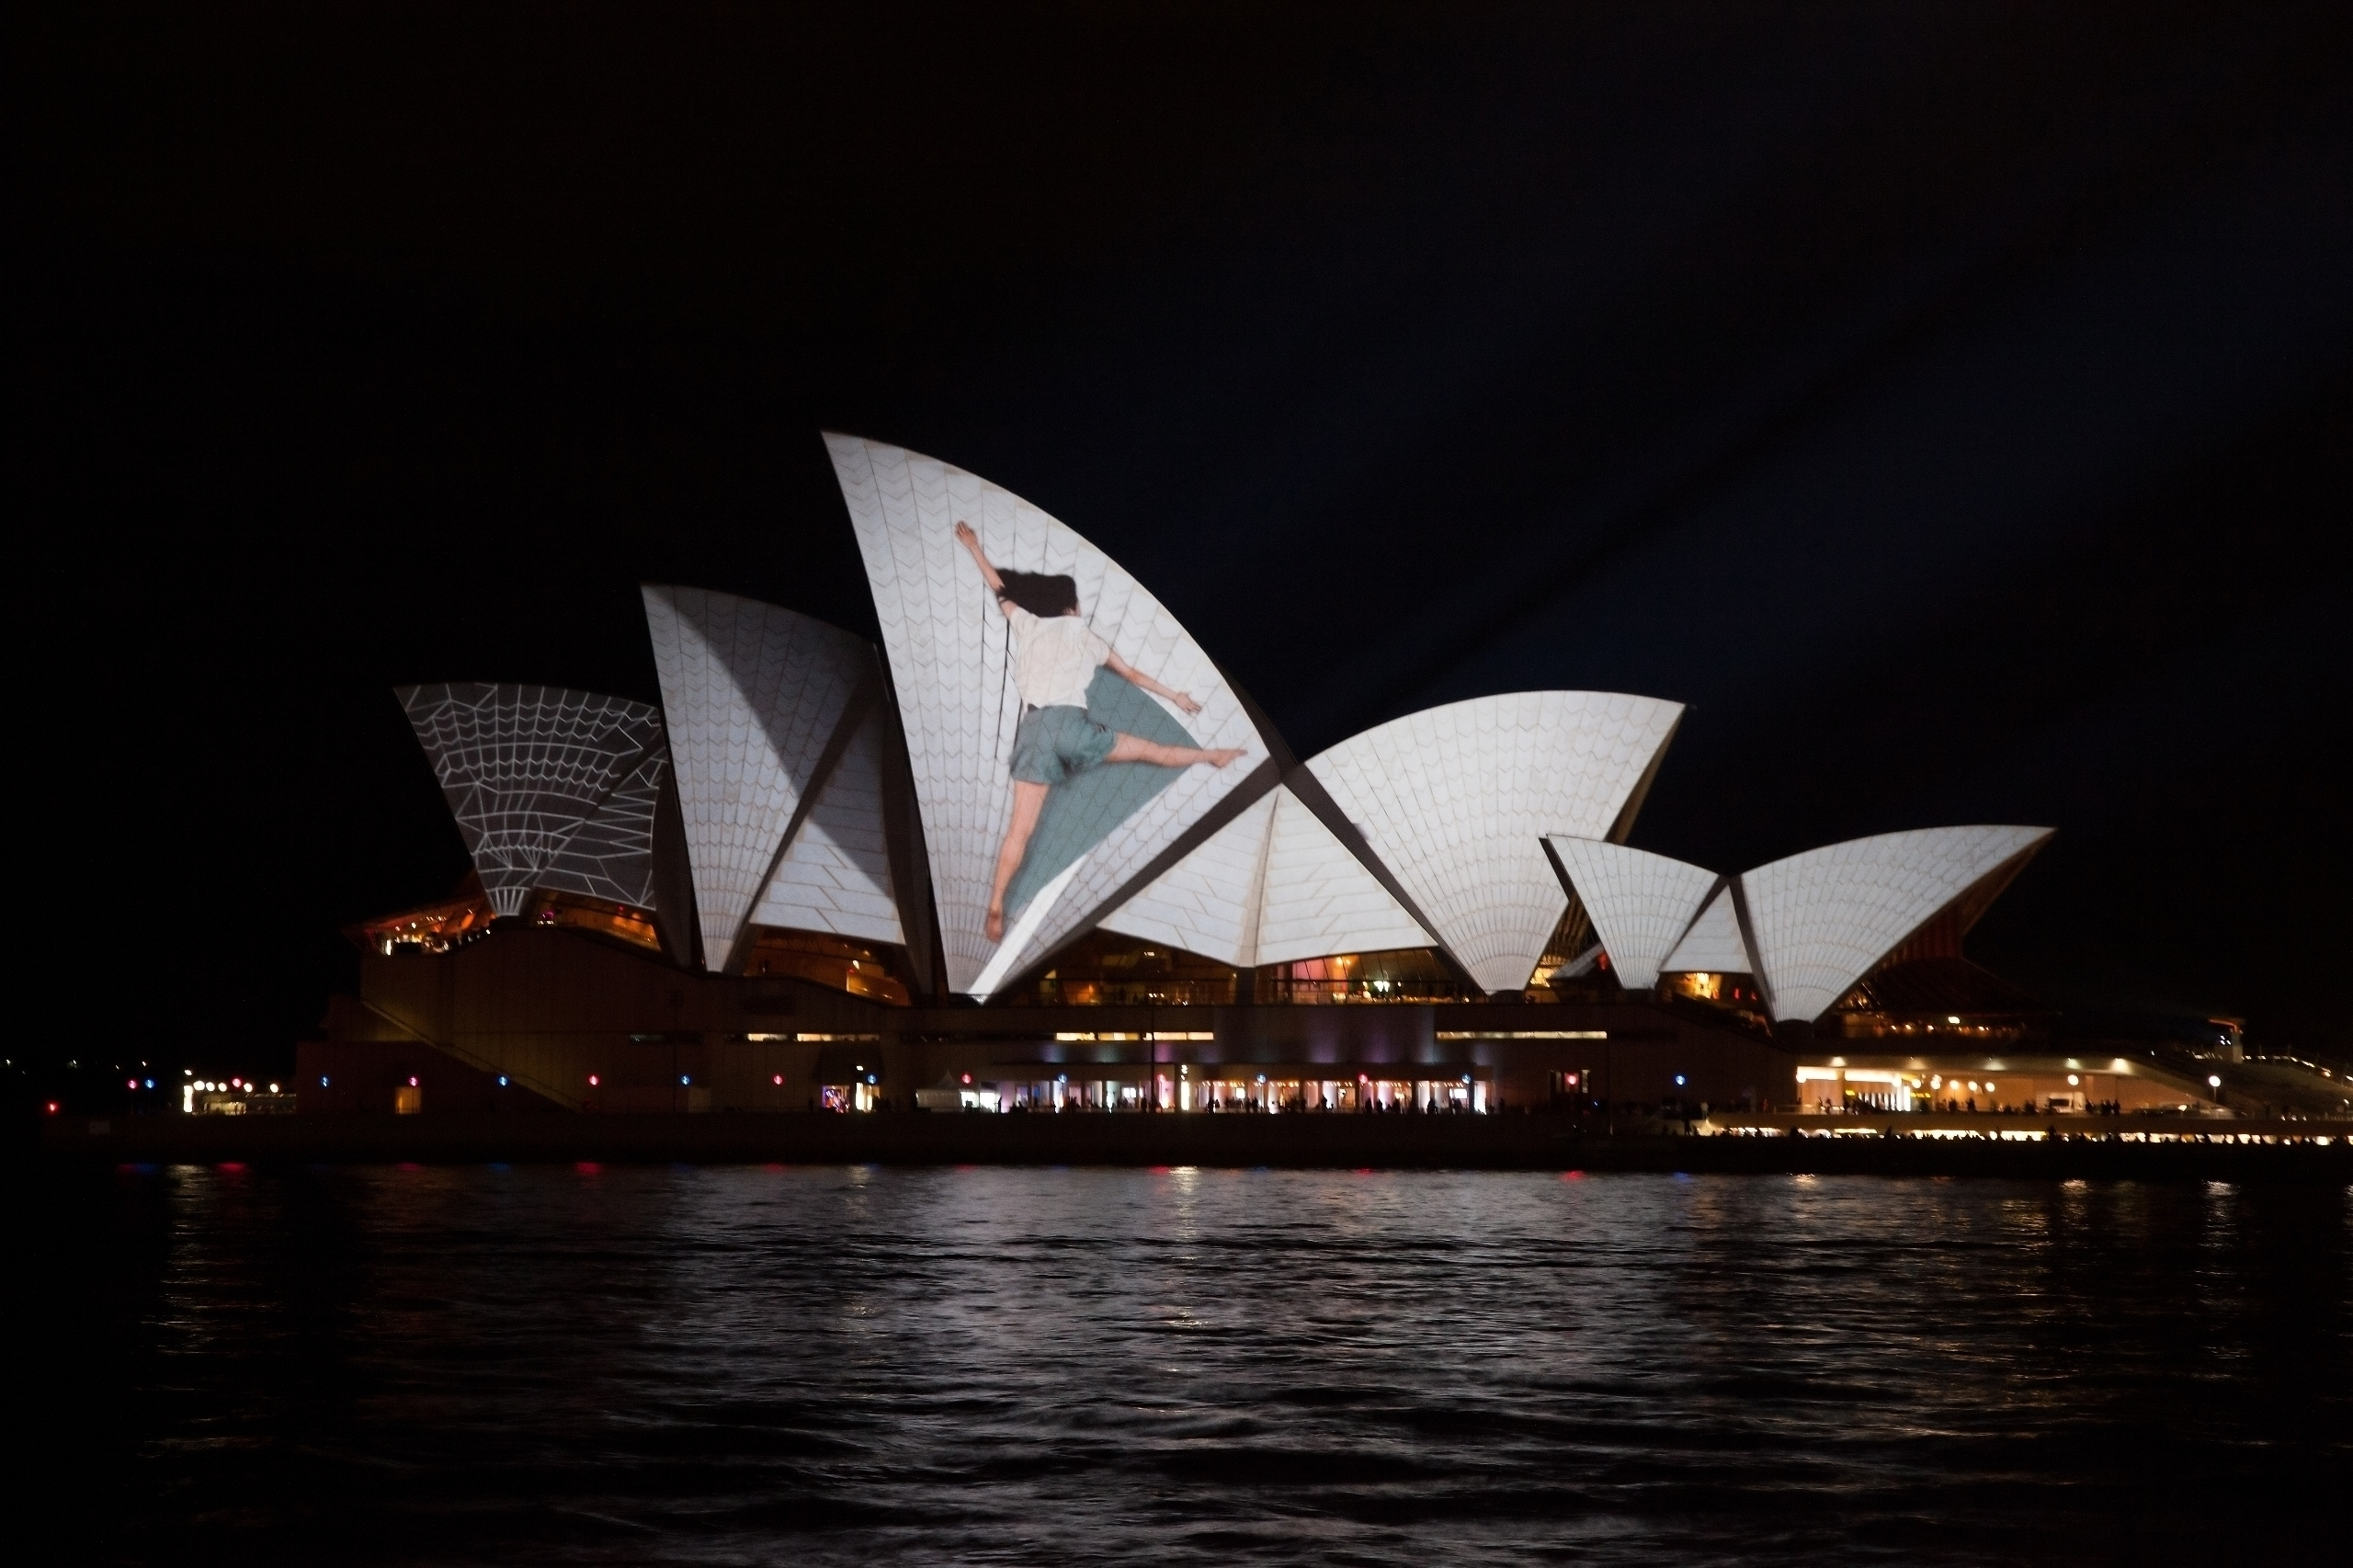 Sydney Opera House - Light Proj - sernboey | ello